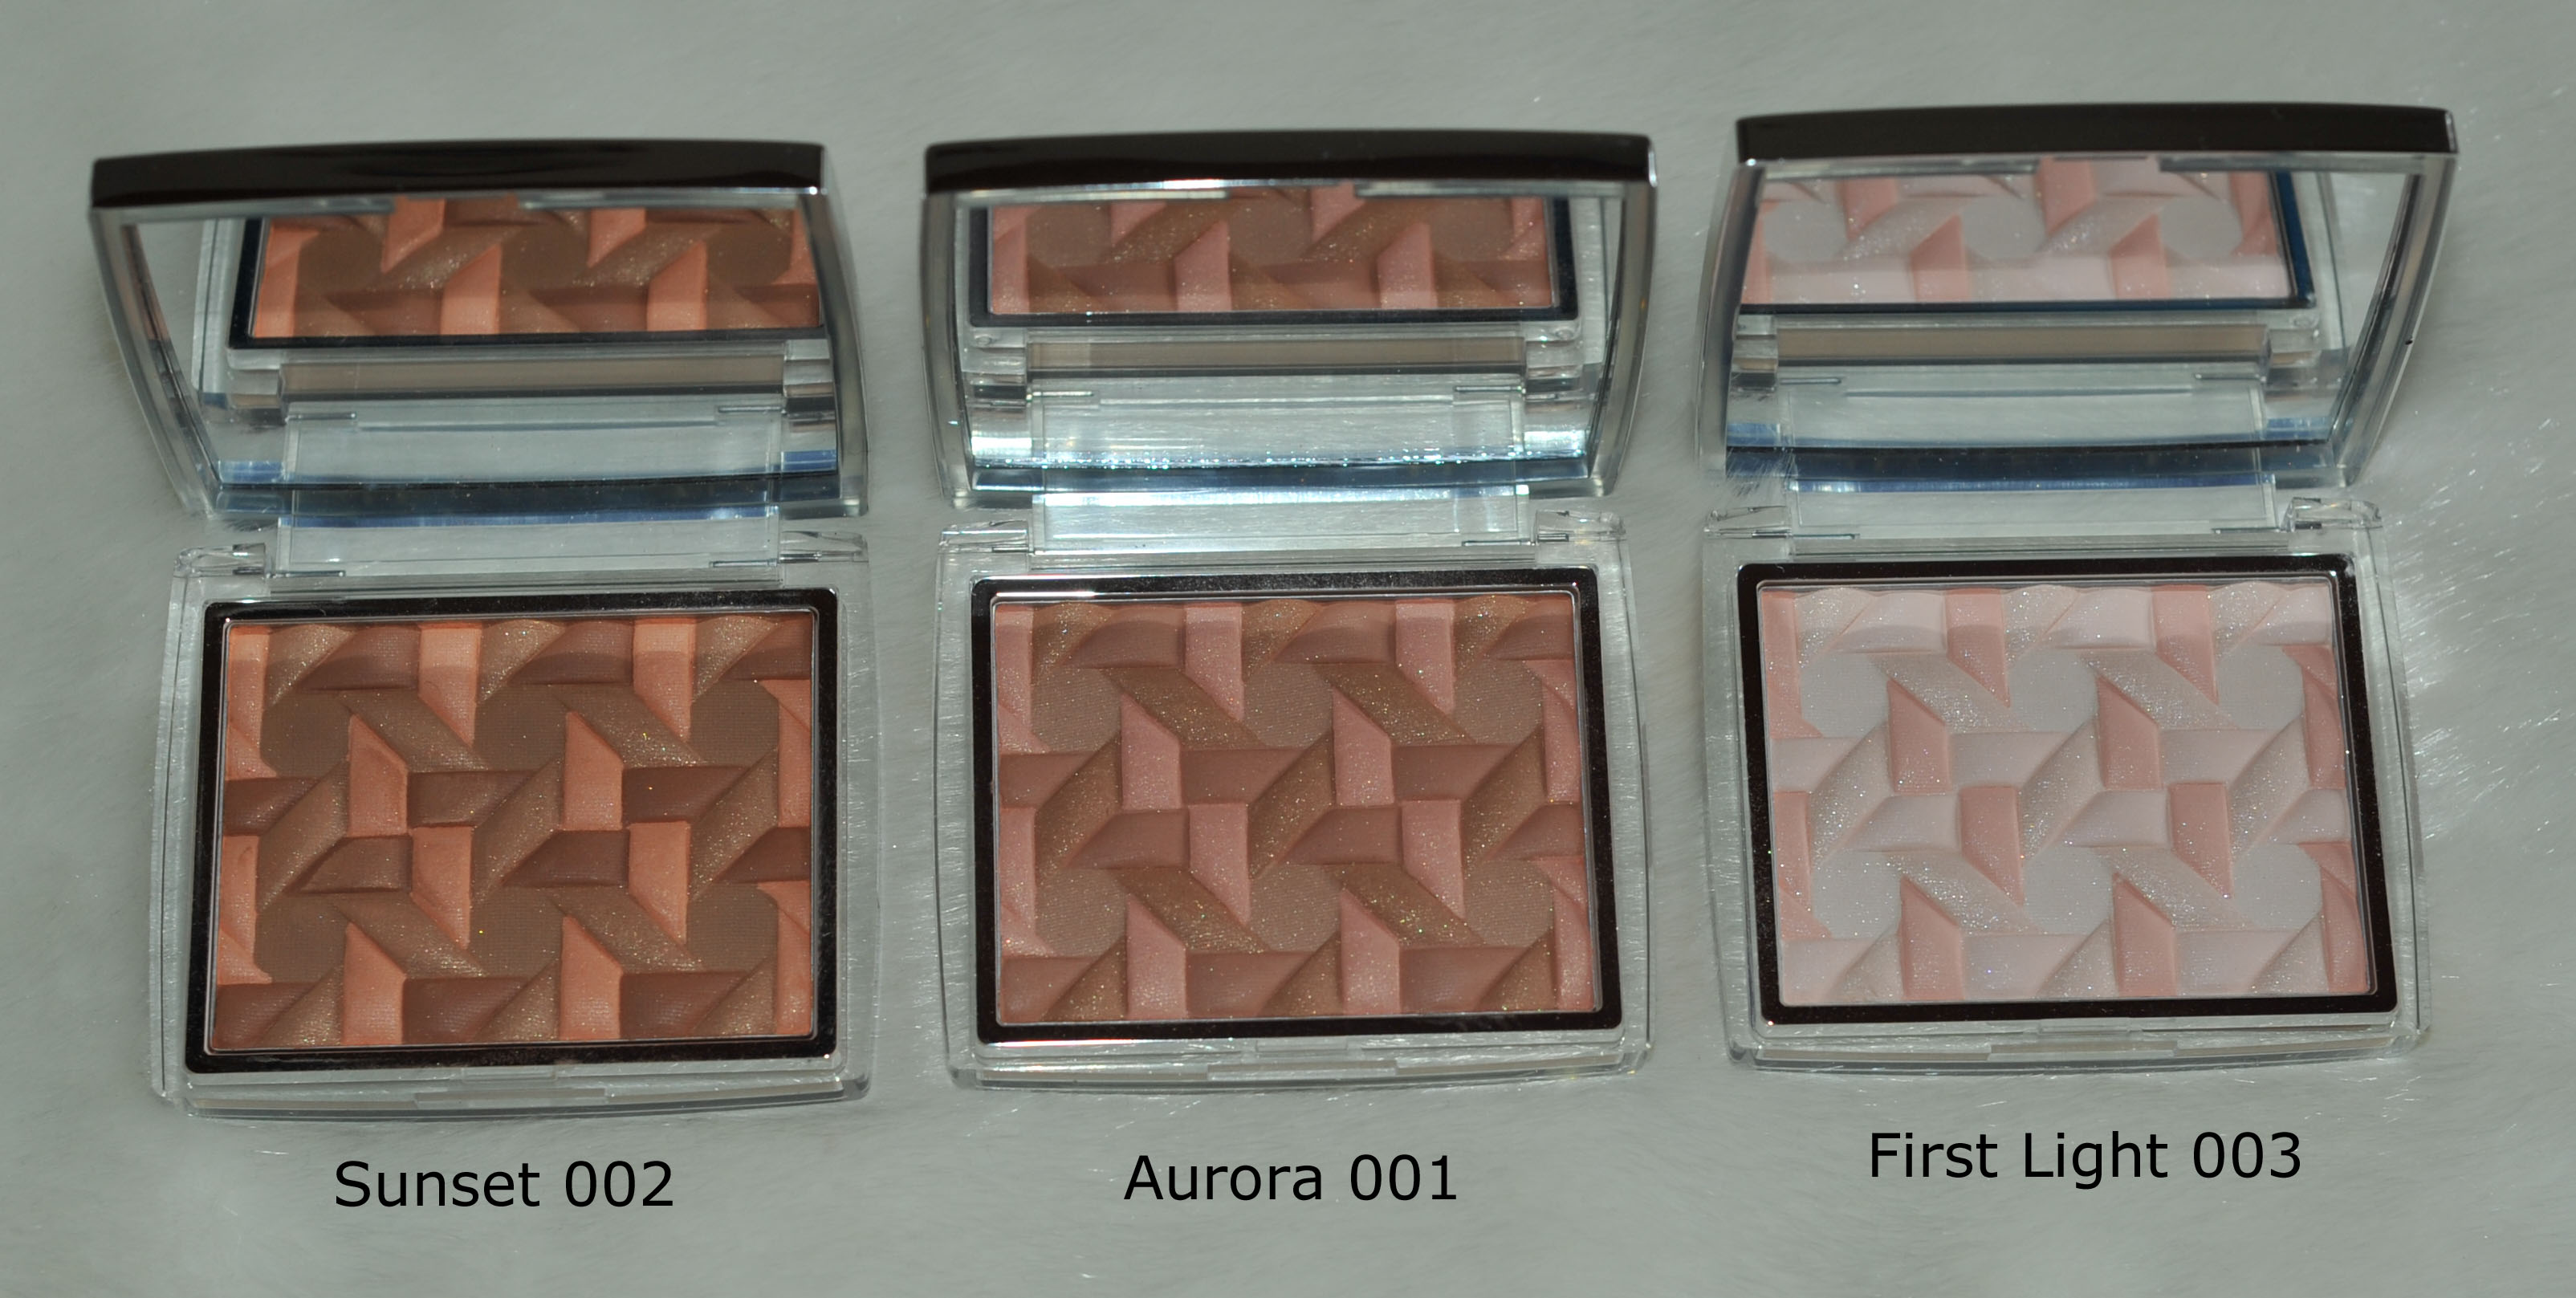 19ba36bf2 But for Chanel, and for these Les 4 Ombres quads and the Joues Contraste  blushes, the names are the same but the texture is completely different.